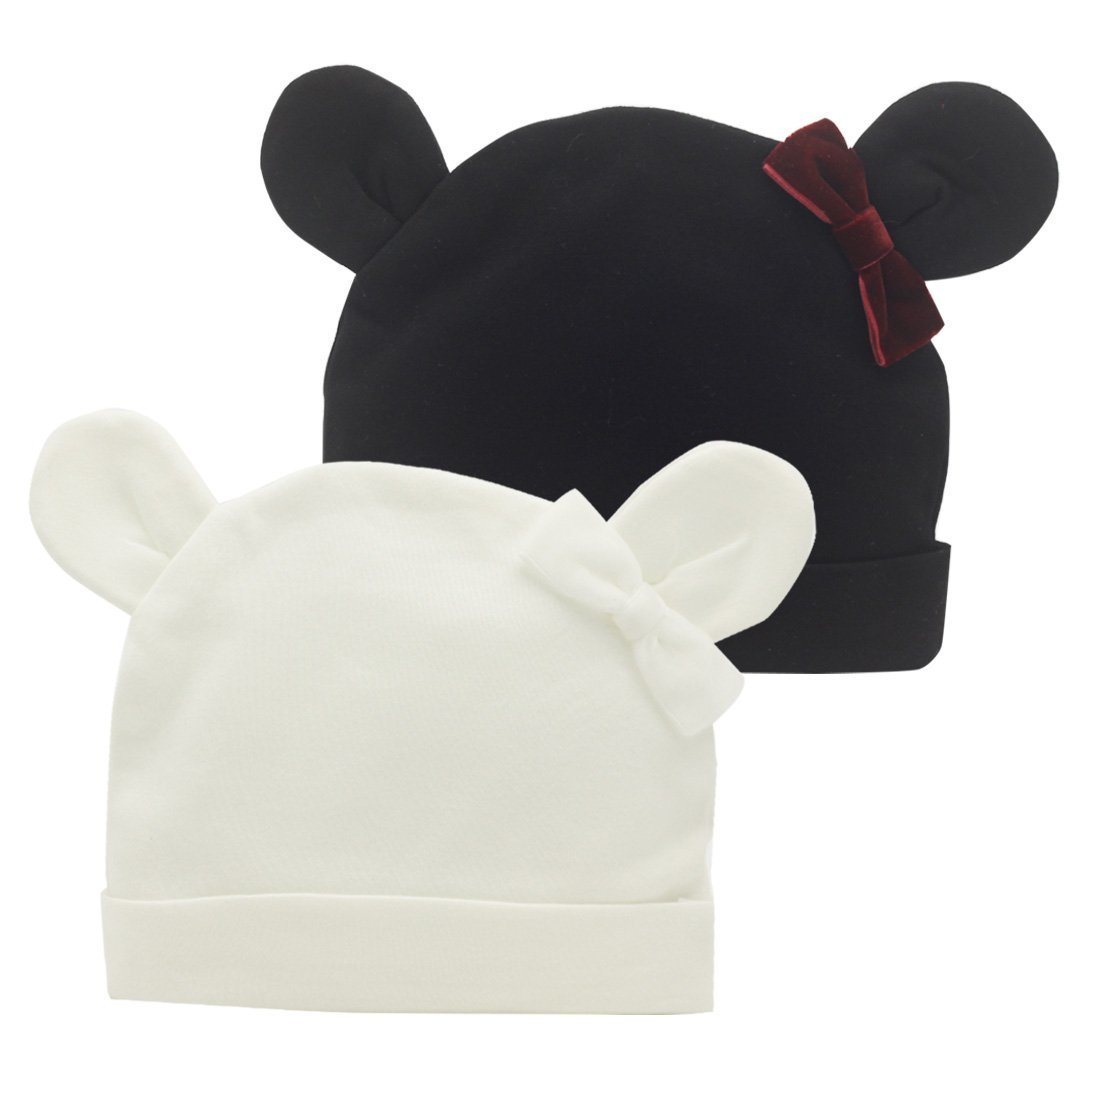 Nihao Baby HAT ベビーガールズ 6 - 12 Months White Black Baby Ear Hat B07G4G1GYG